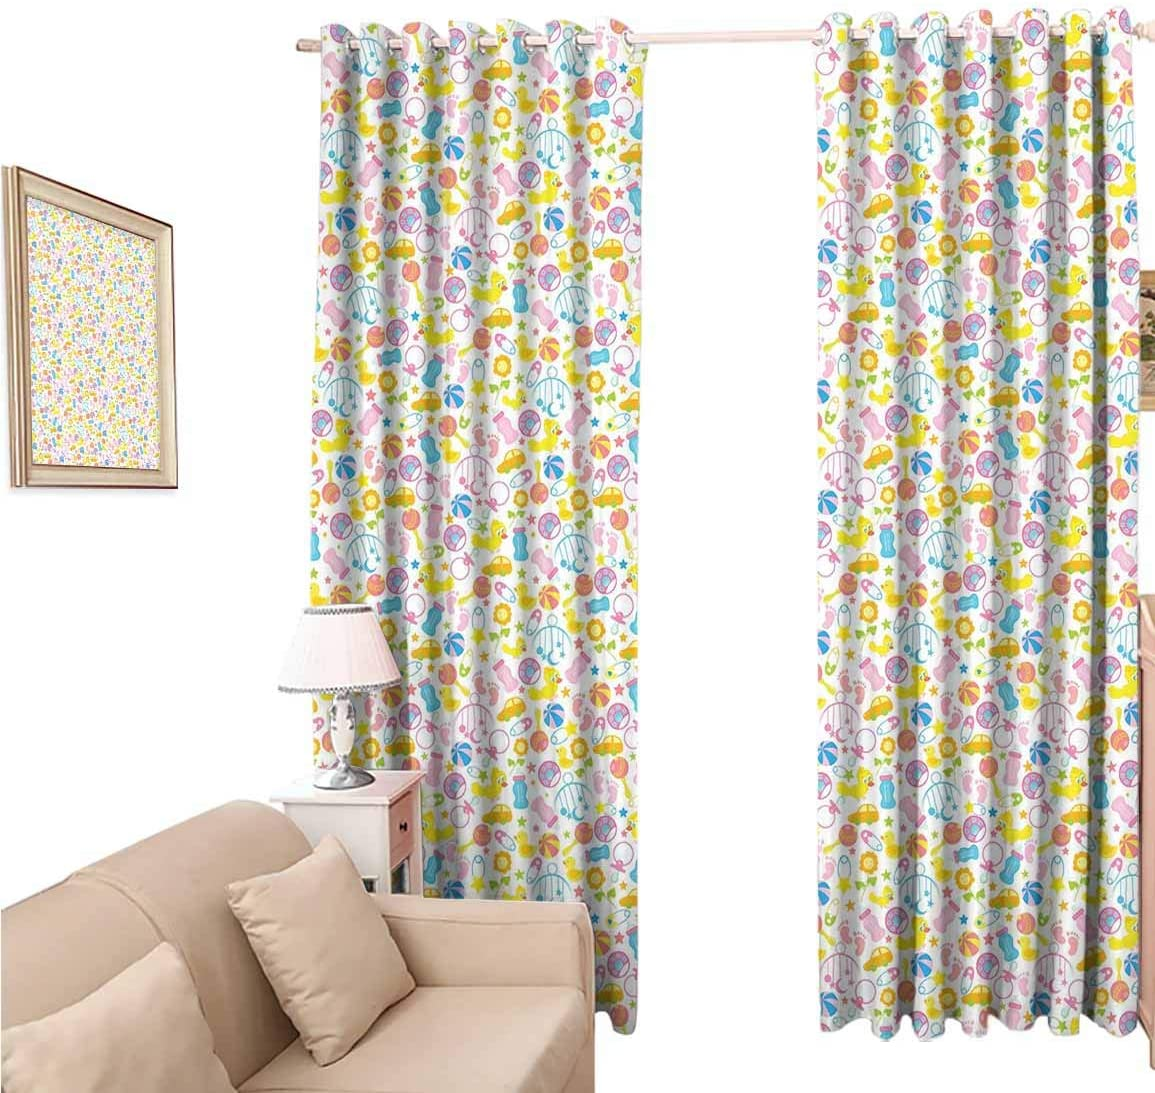 oobon Window Blackout Curtains Fabric, Baby an Assortment of Infant Items Toys Foots Milk Bottles Flower Arrangement, 108 Inches Long for Nursery Room, 96x108 inch